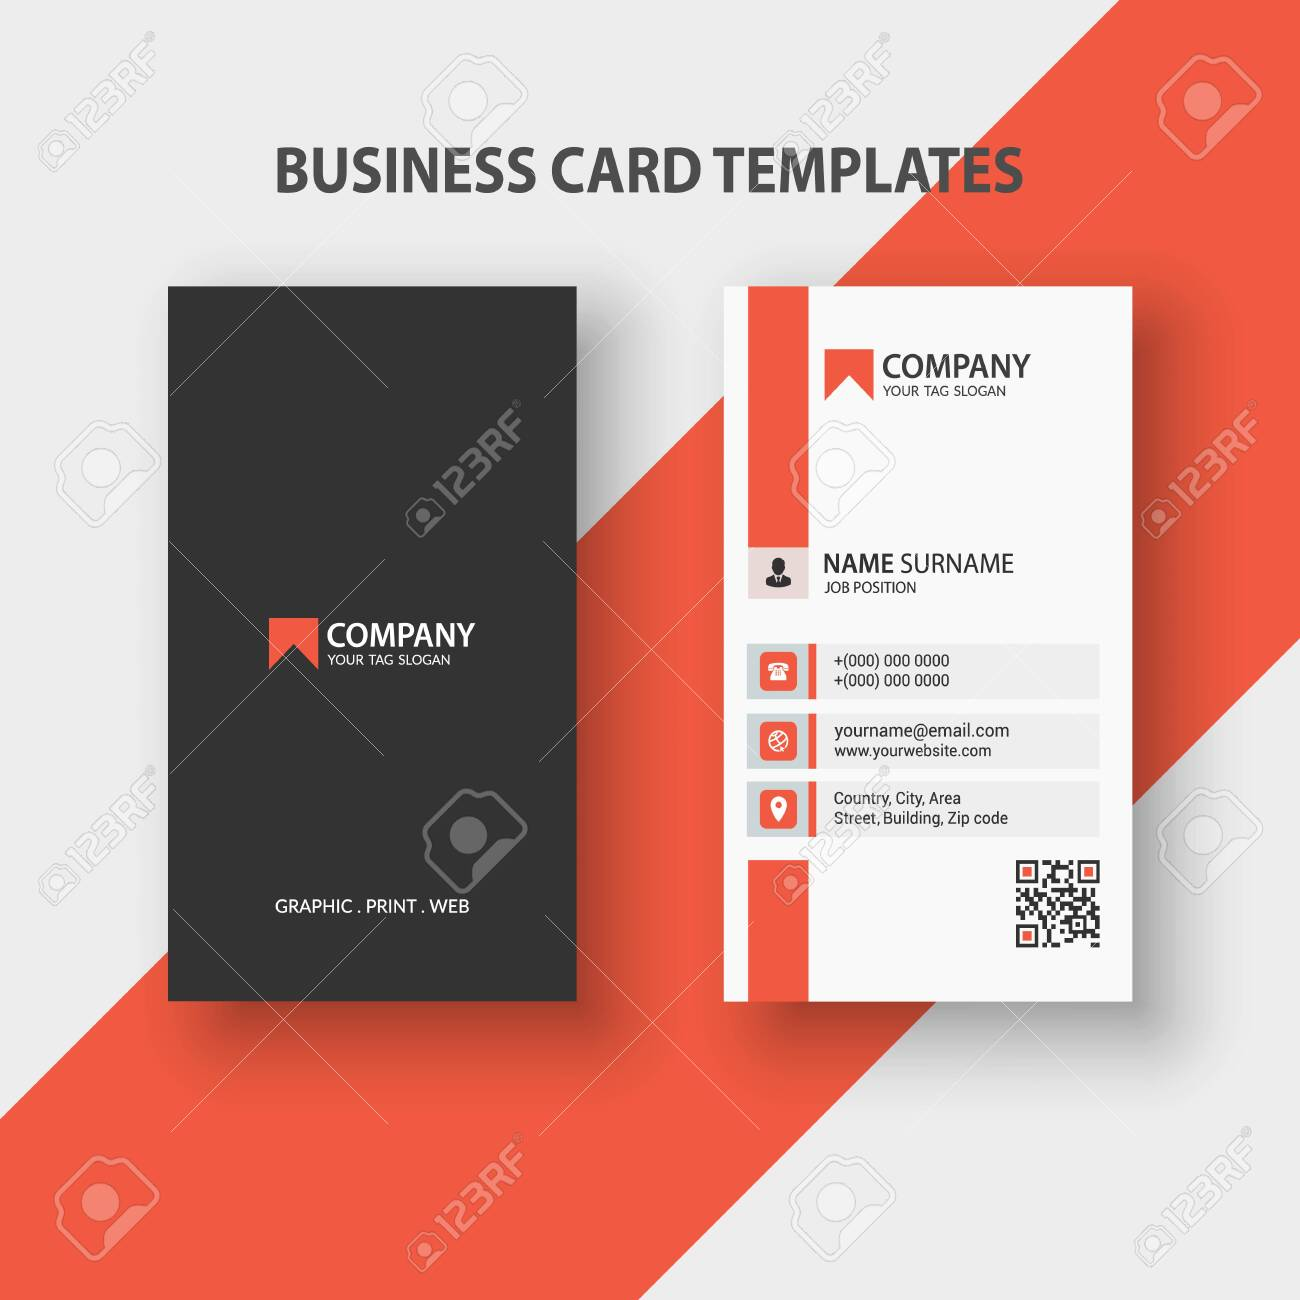 Modern Vertical Double-sided Business Card Template. Stationery Design, Flat Design, Print Template, Vector illustration - 149465285